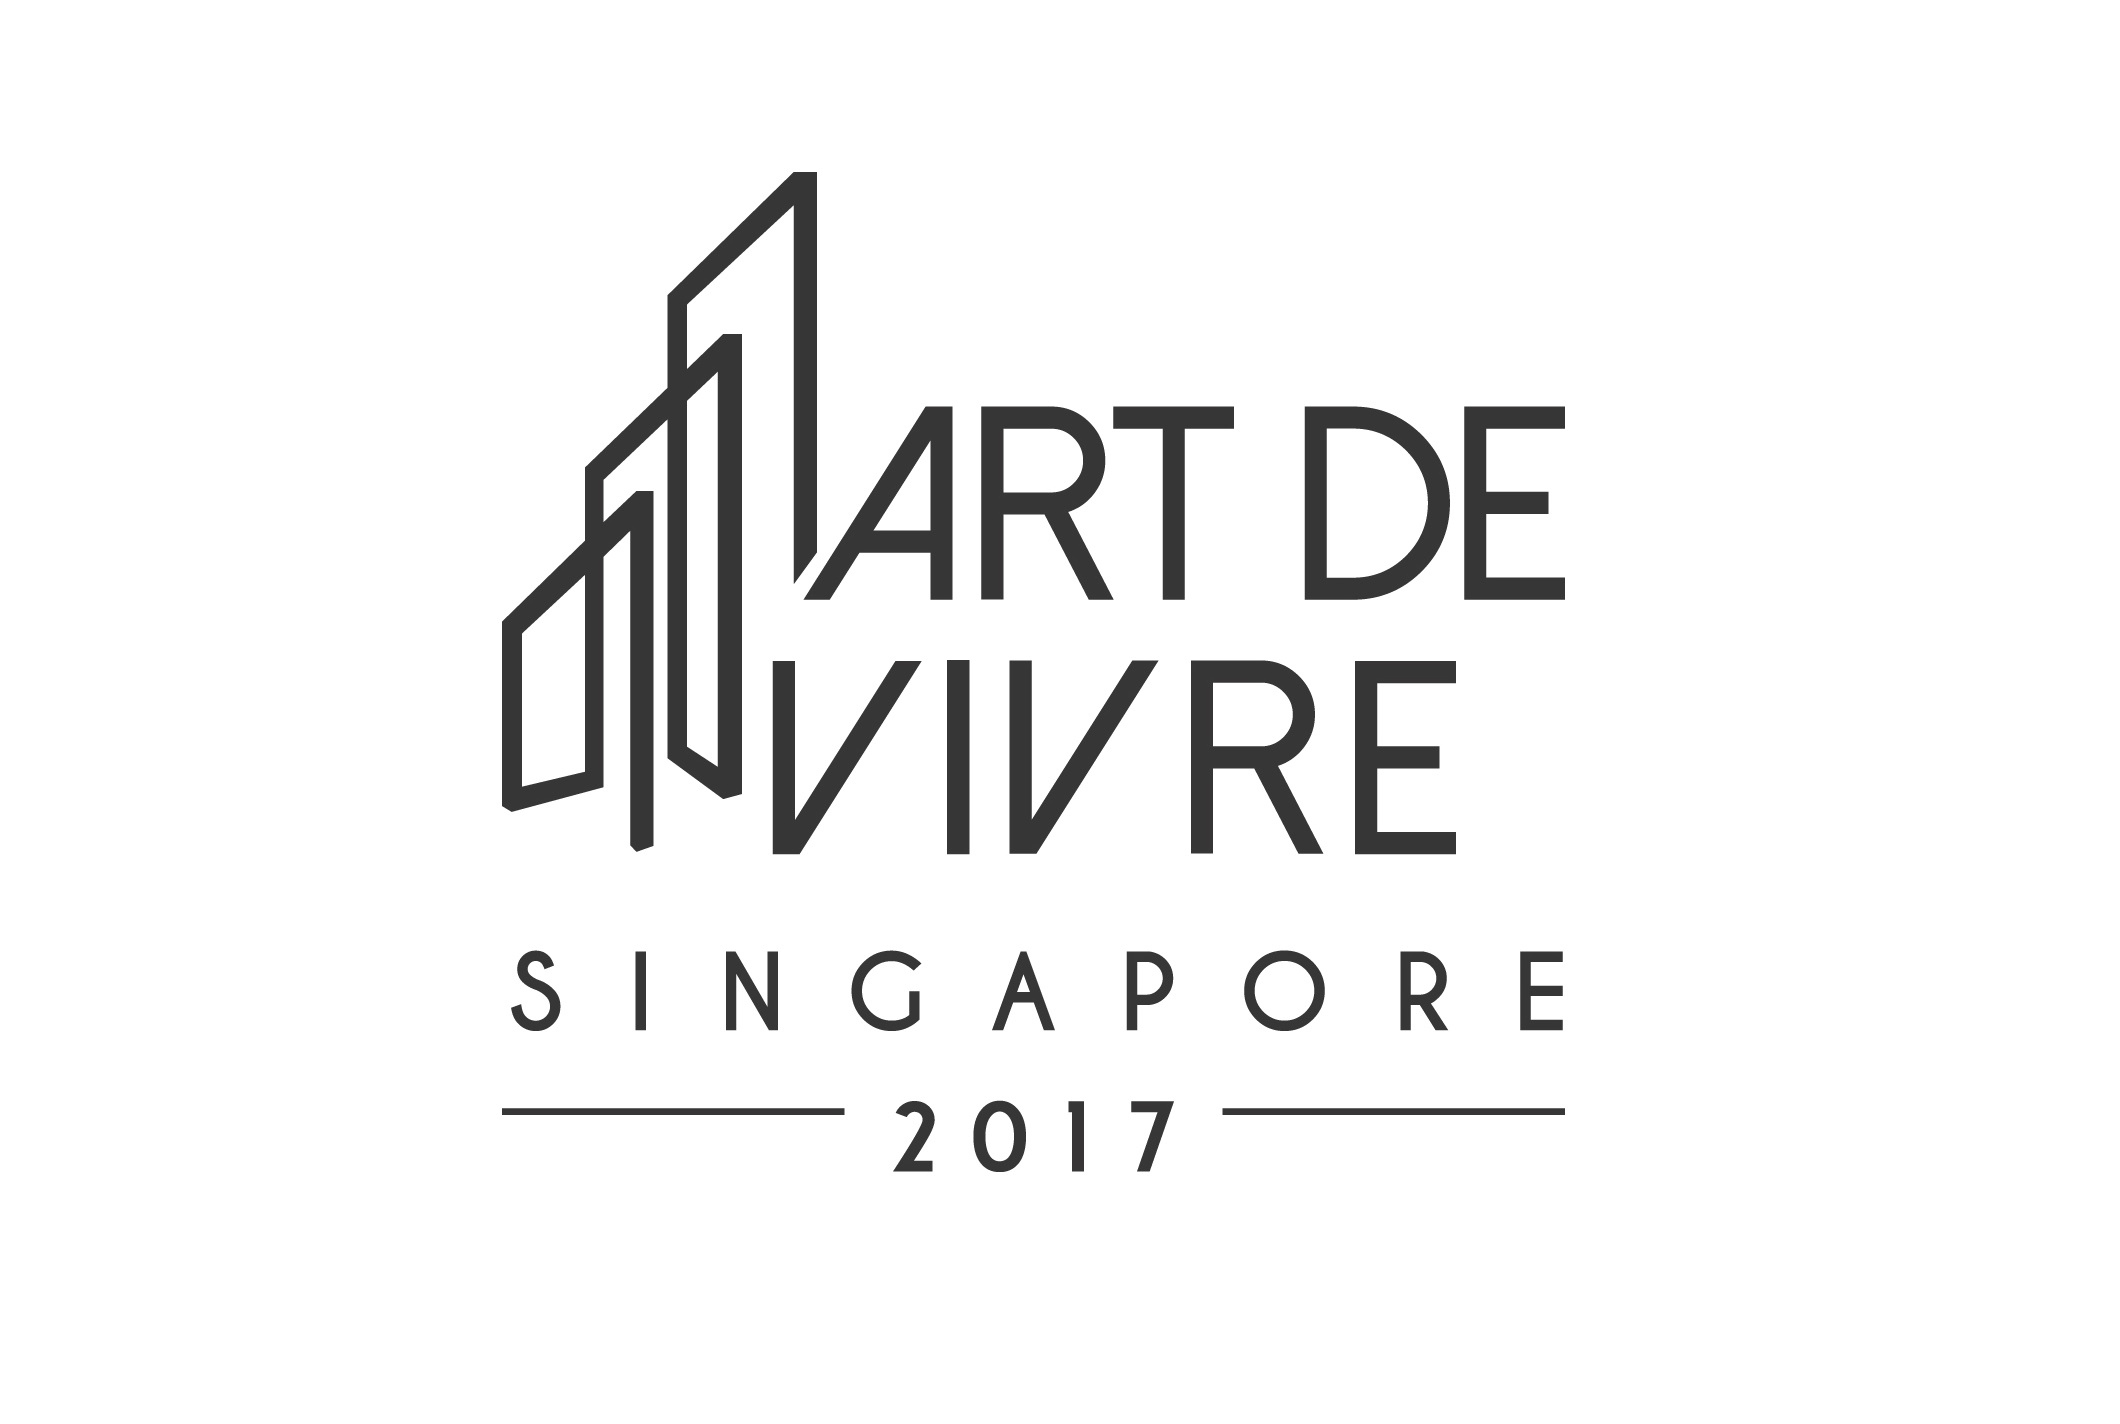 Premi re dition du salon art de vivre la fran aise for Chambre de commerce francaise singapore